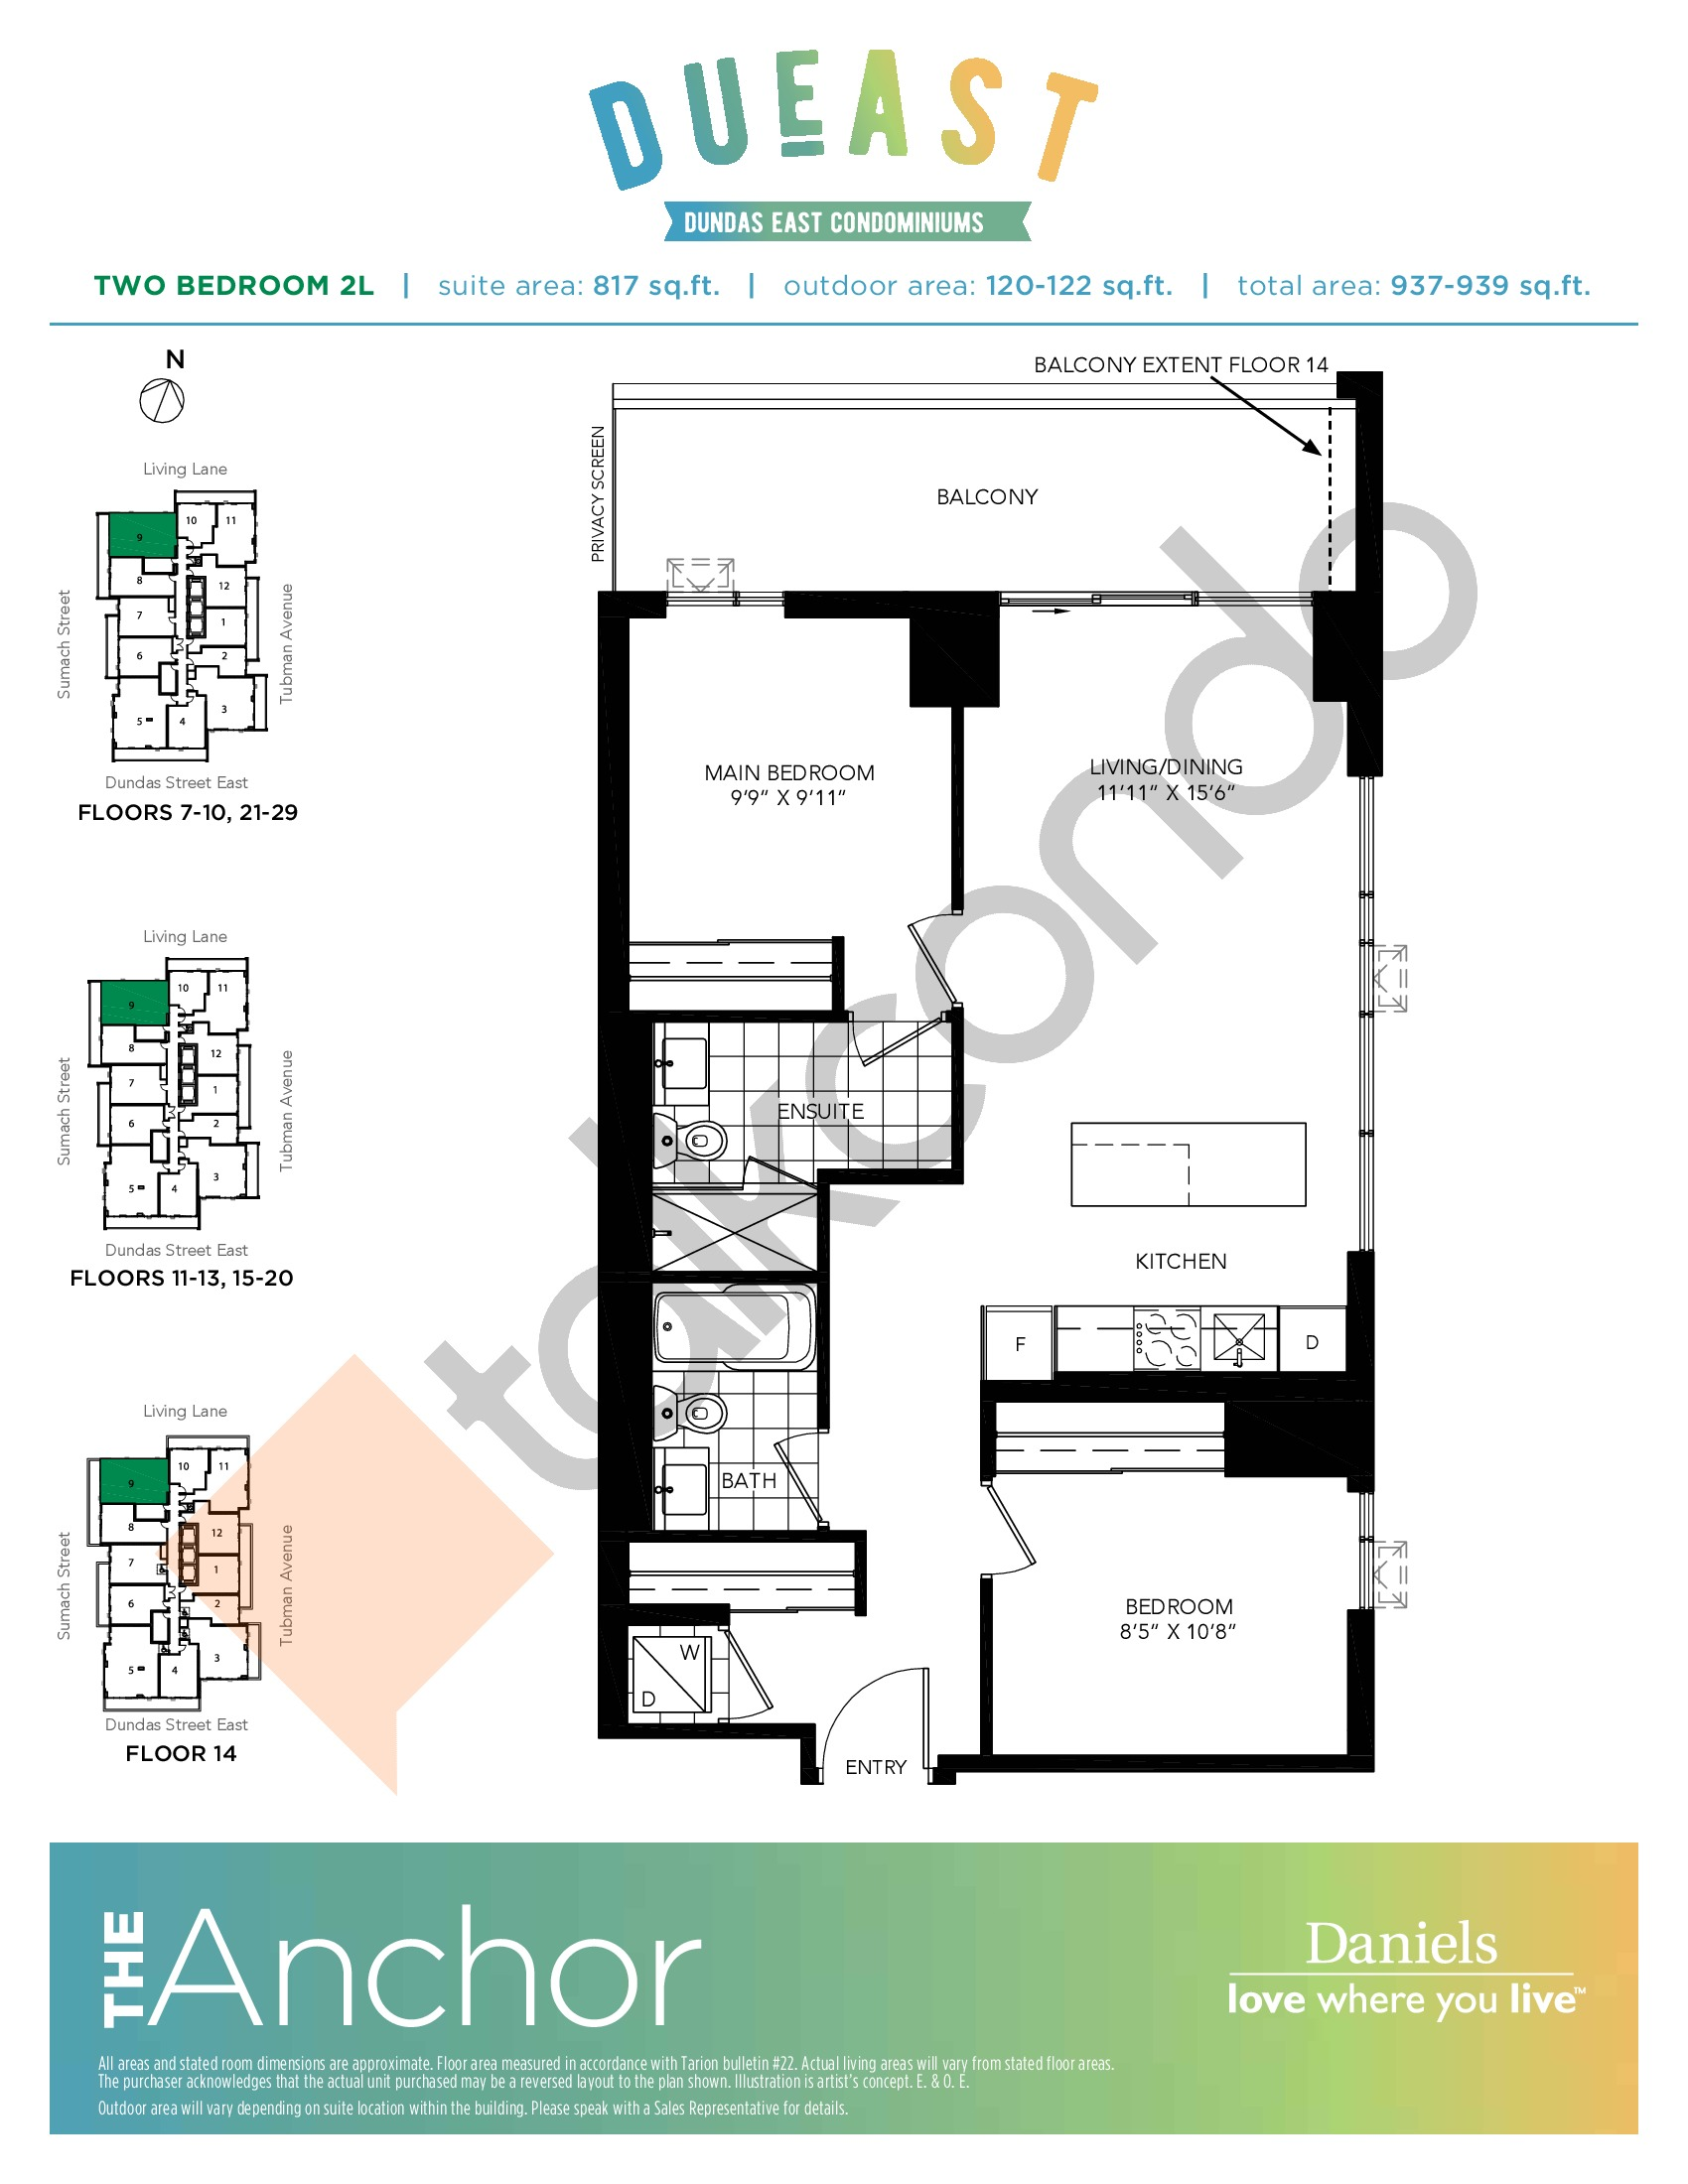 The Anchor (2L) Floor Plan at DuEast Condos - 817 sq.ft